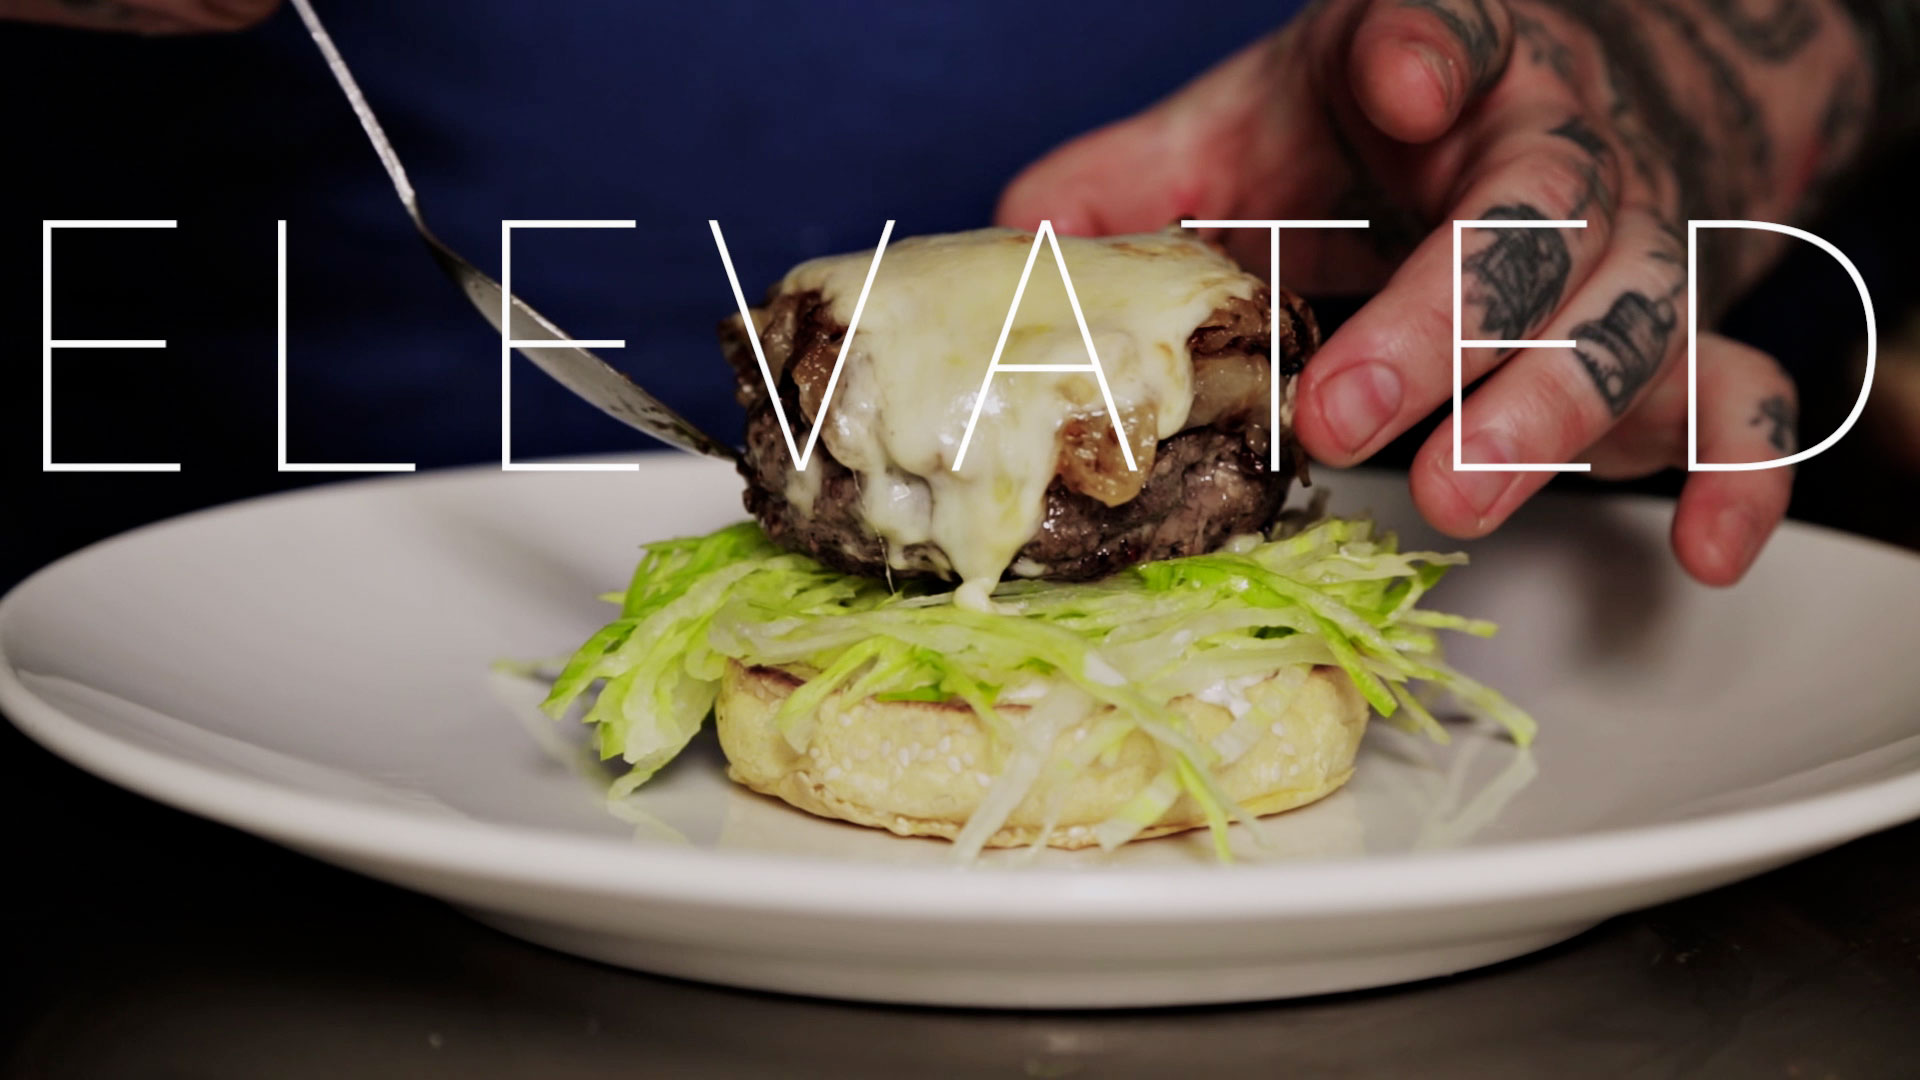 Chefs Feed: Elevated with Matty Matheson